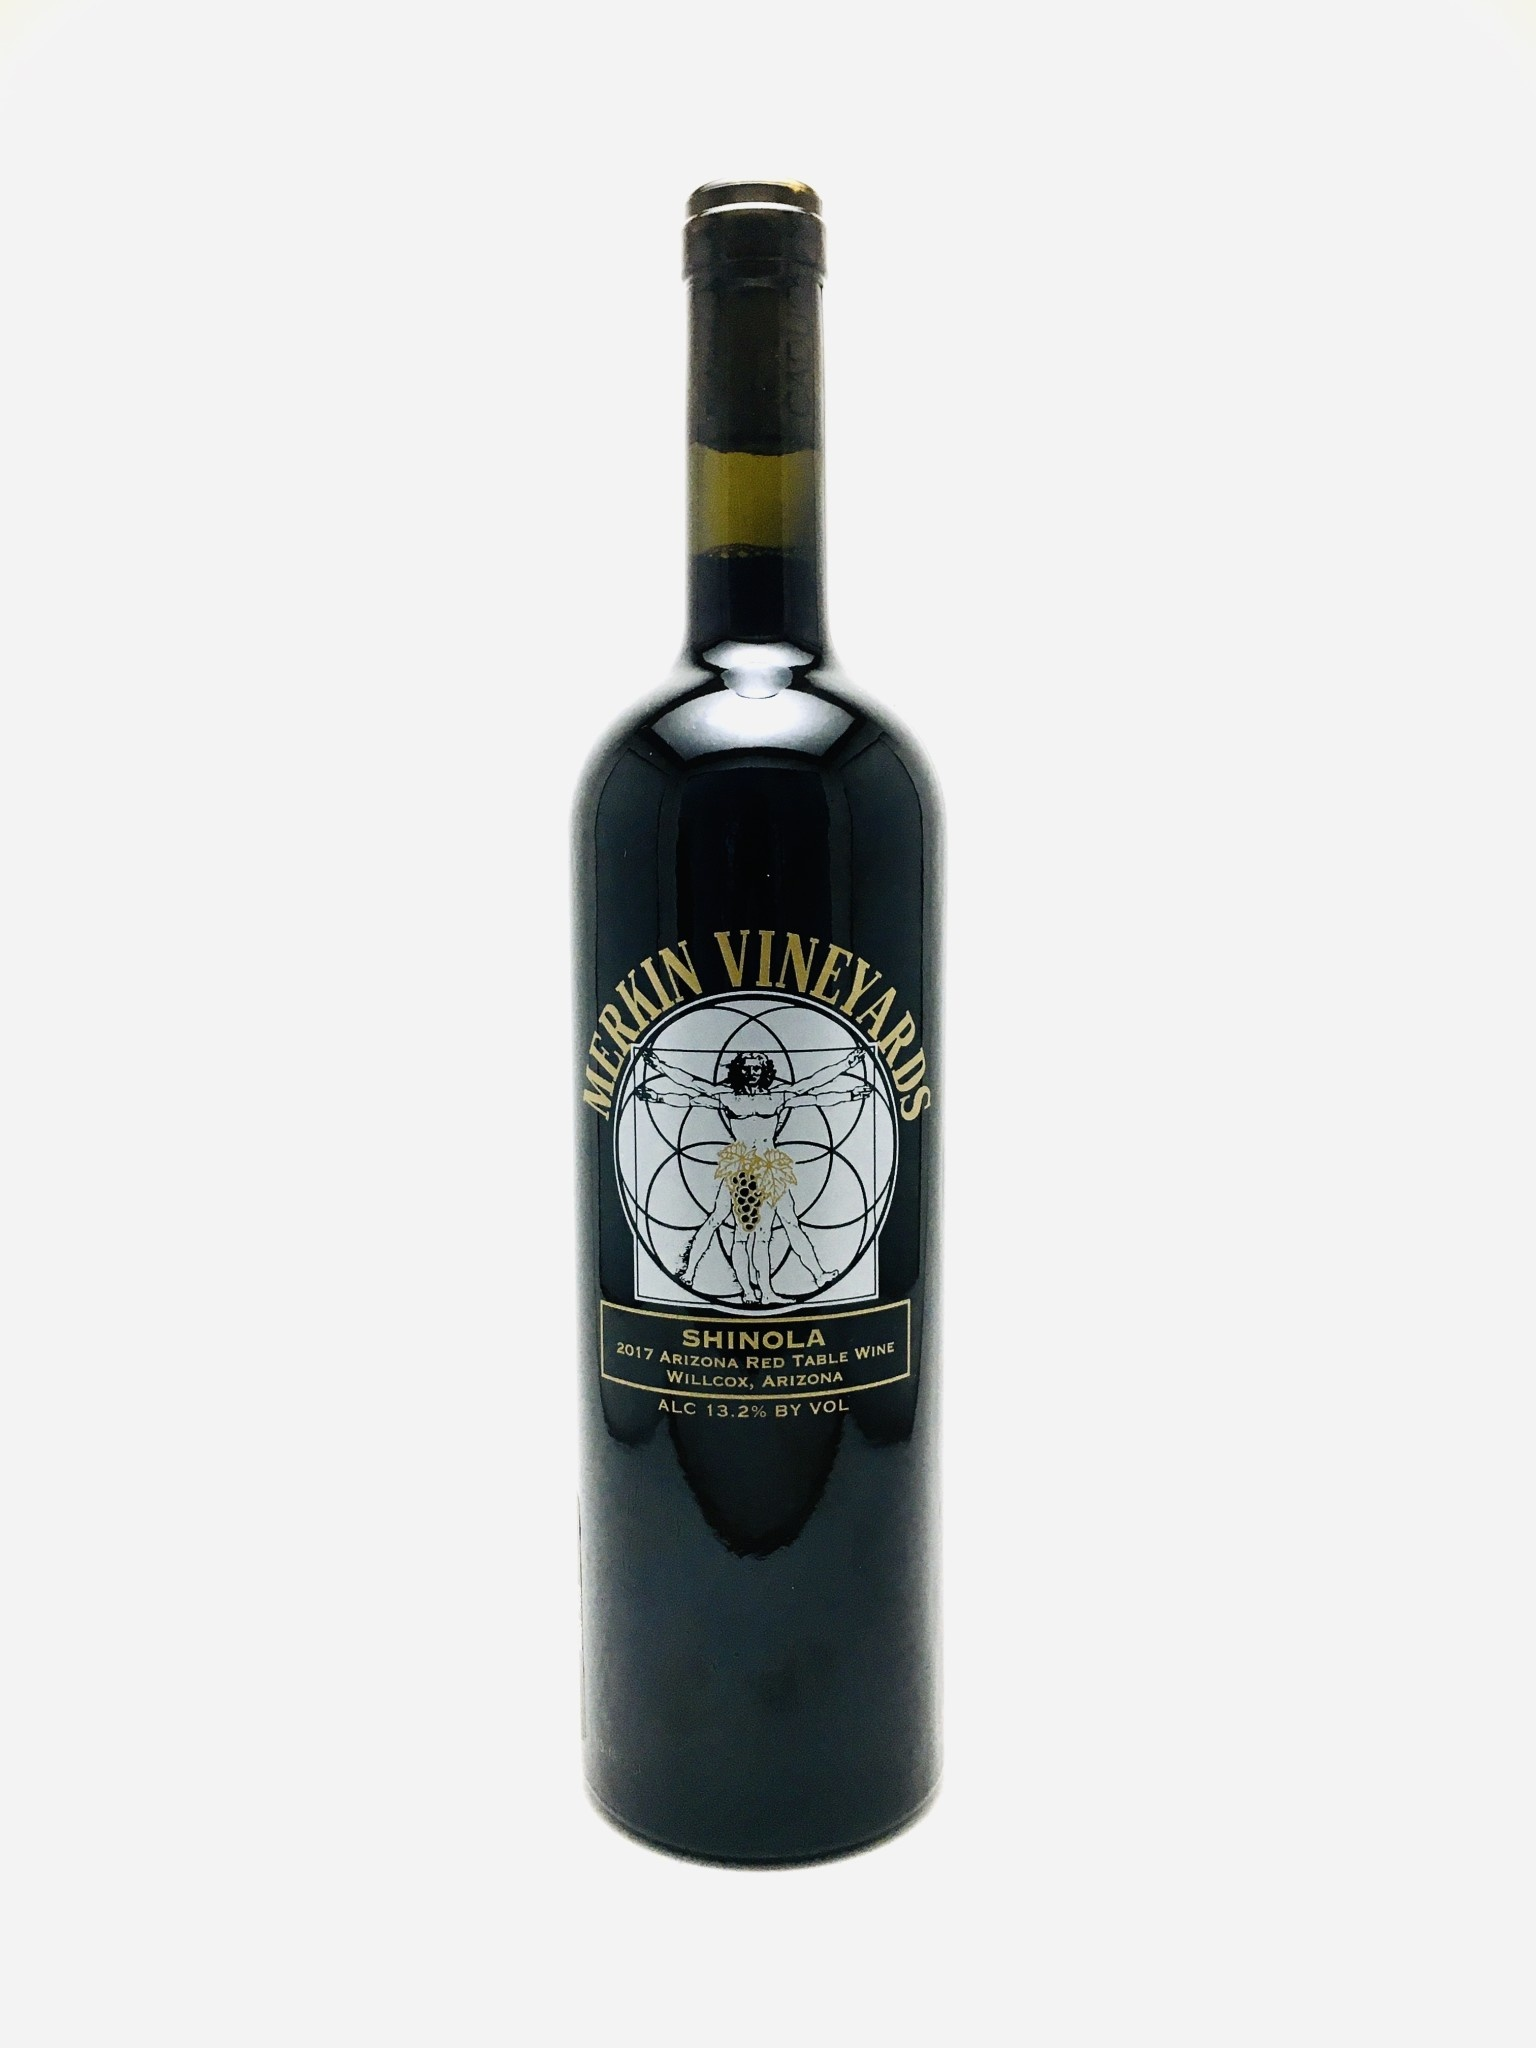 Merkin Vineyards Shinola Red Blend Arizona 2018